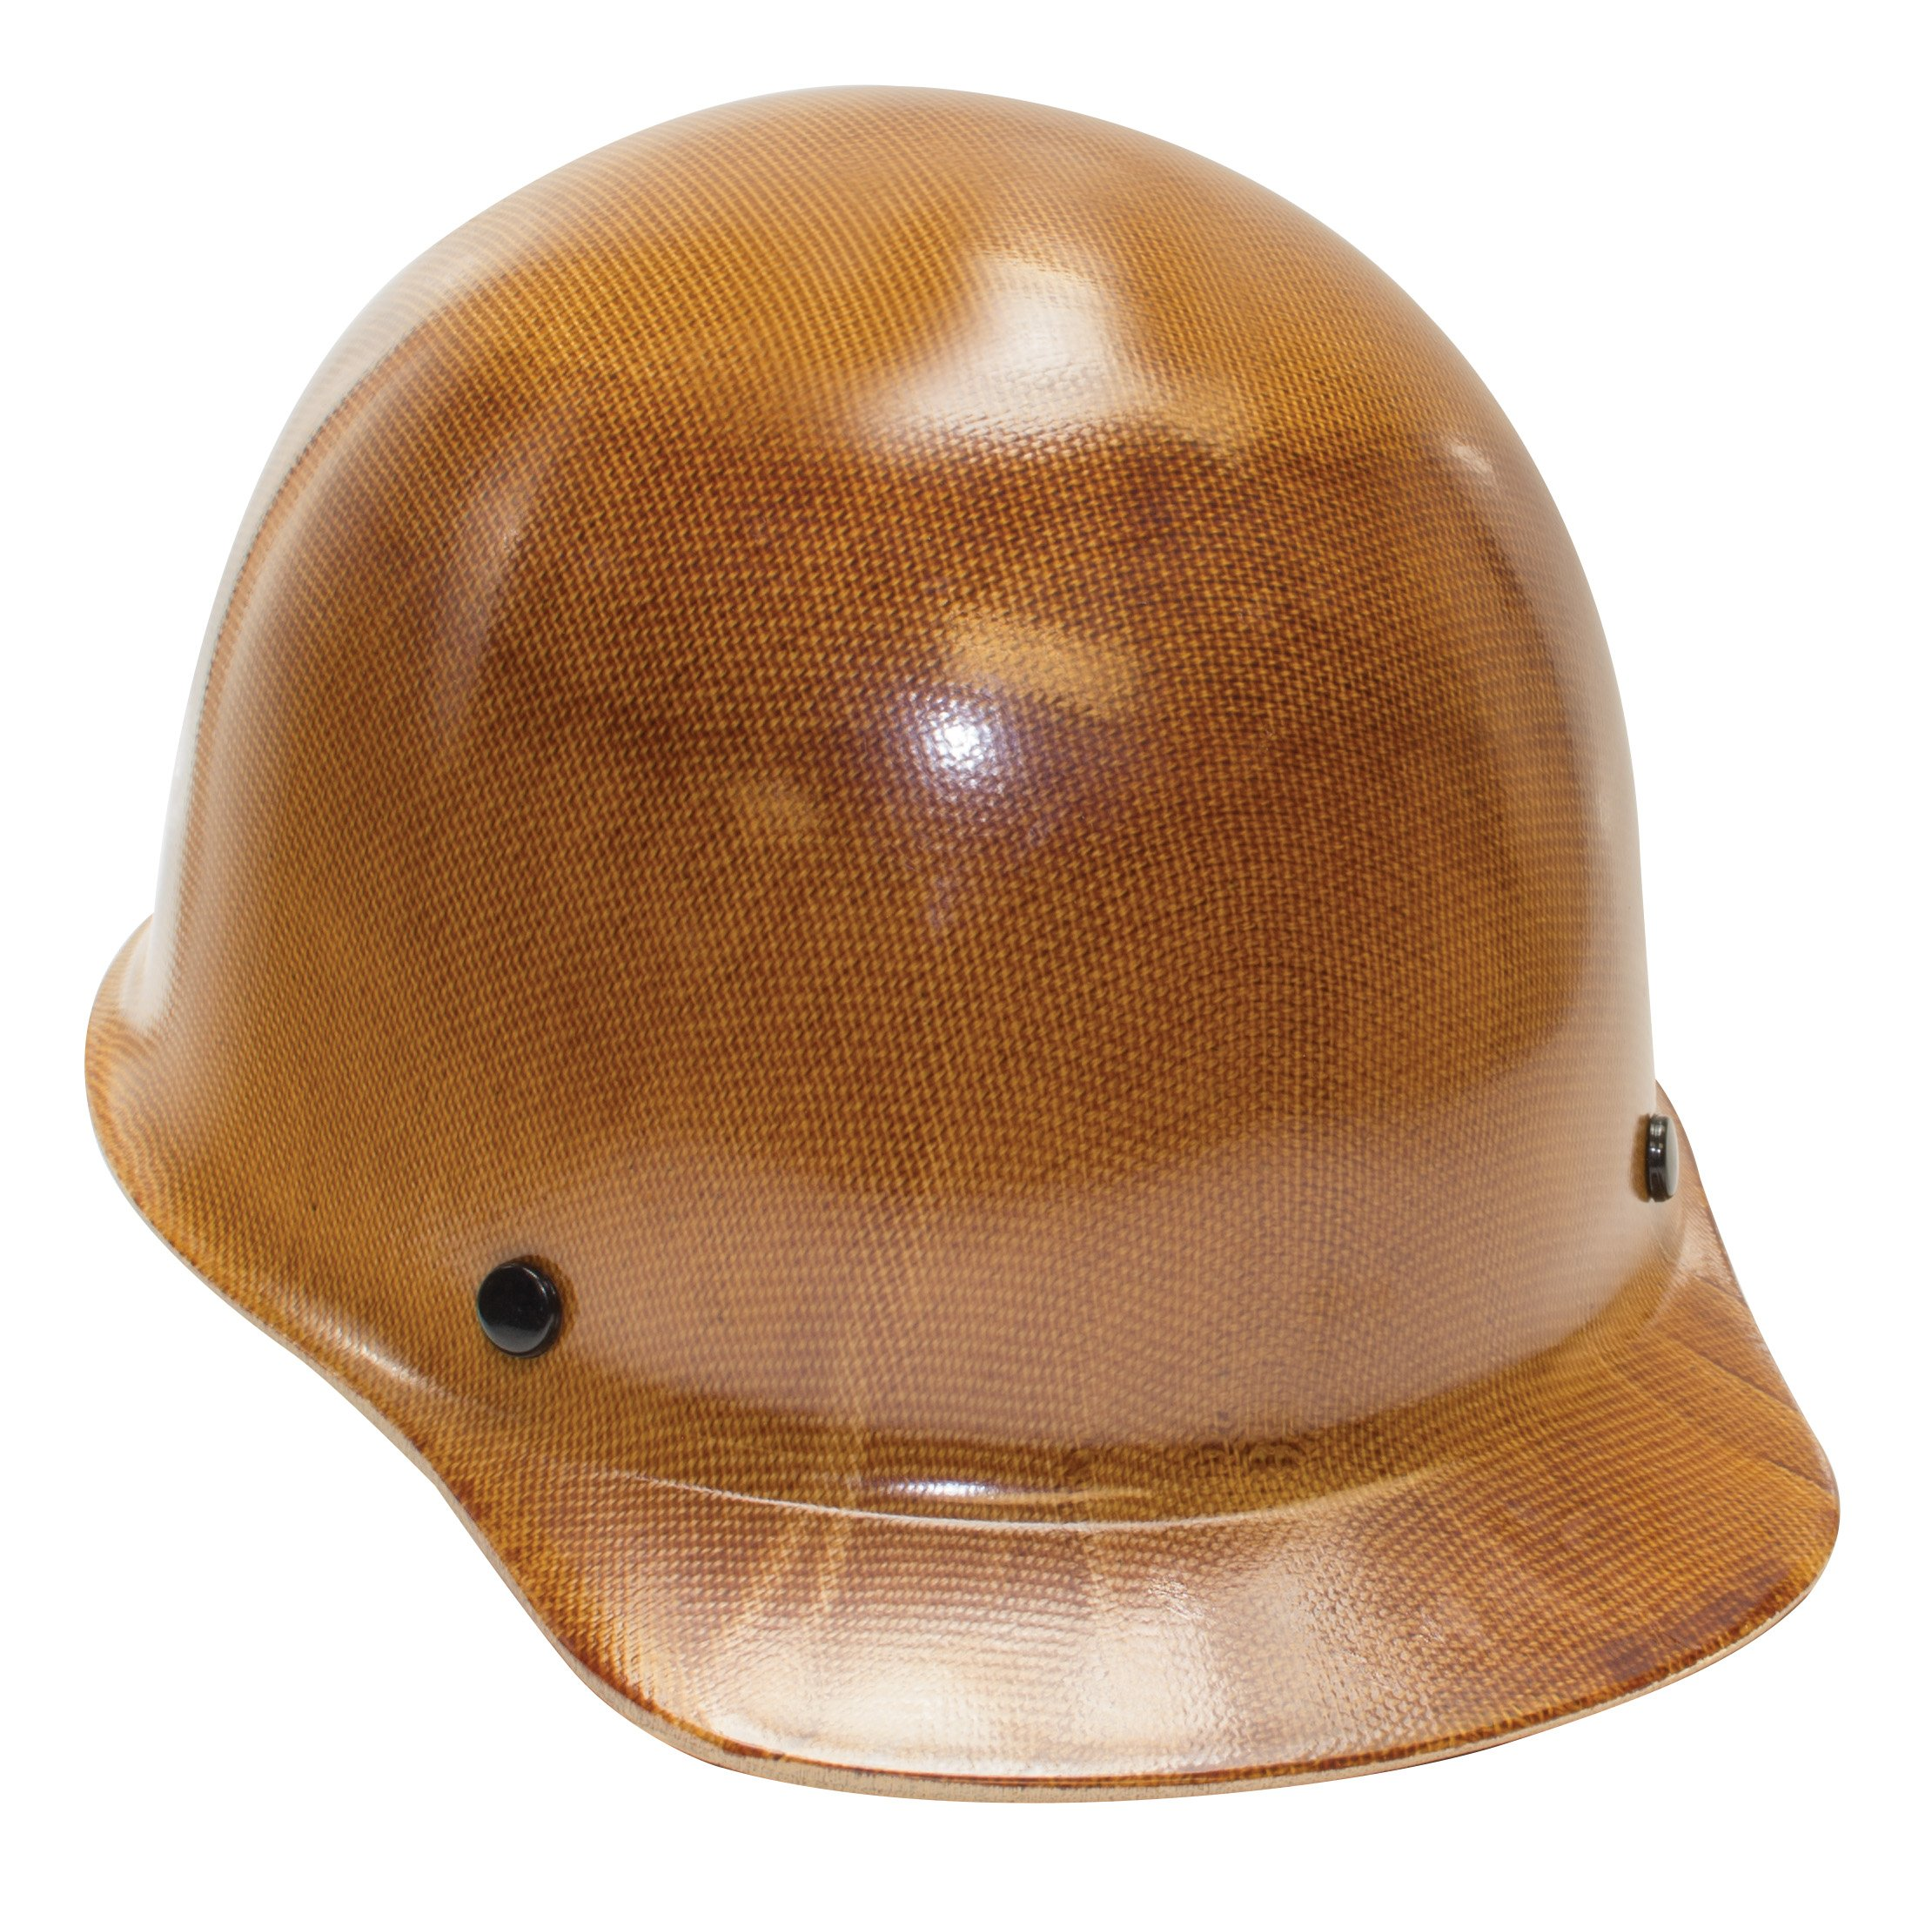 Safety Works 10105971 Professional Hardhat